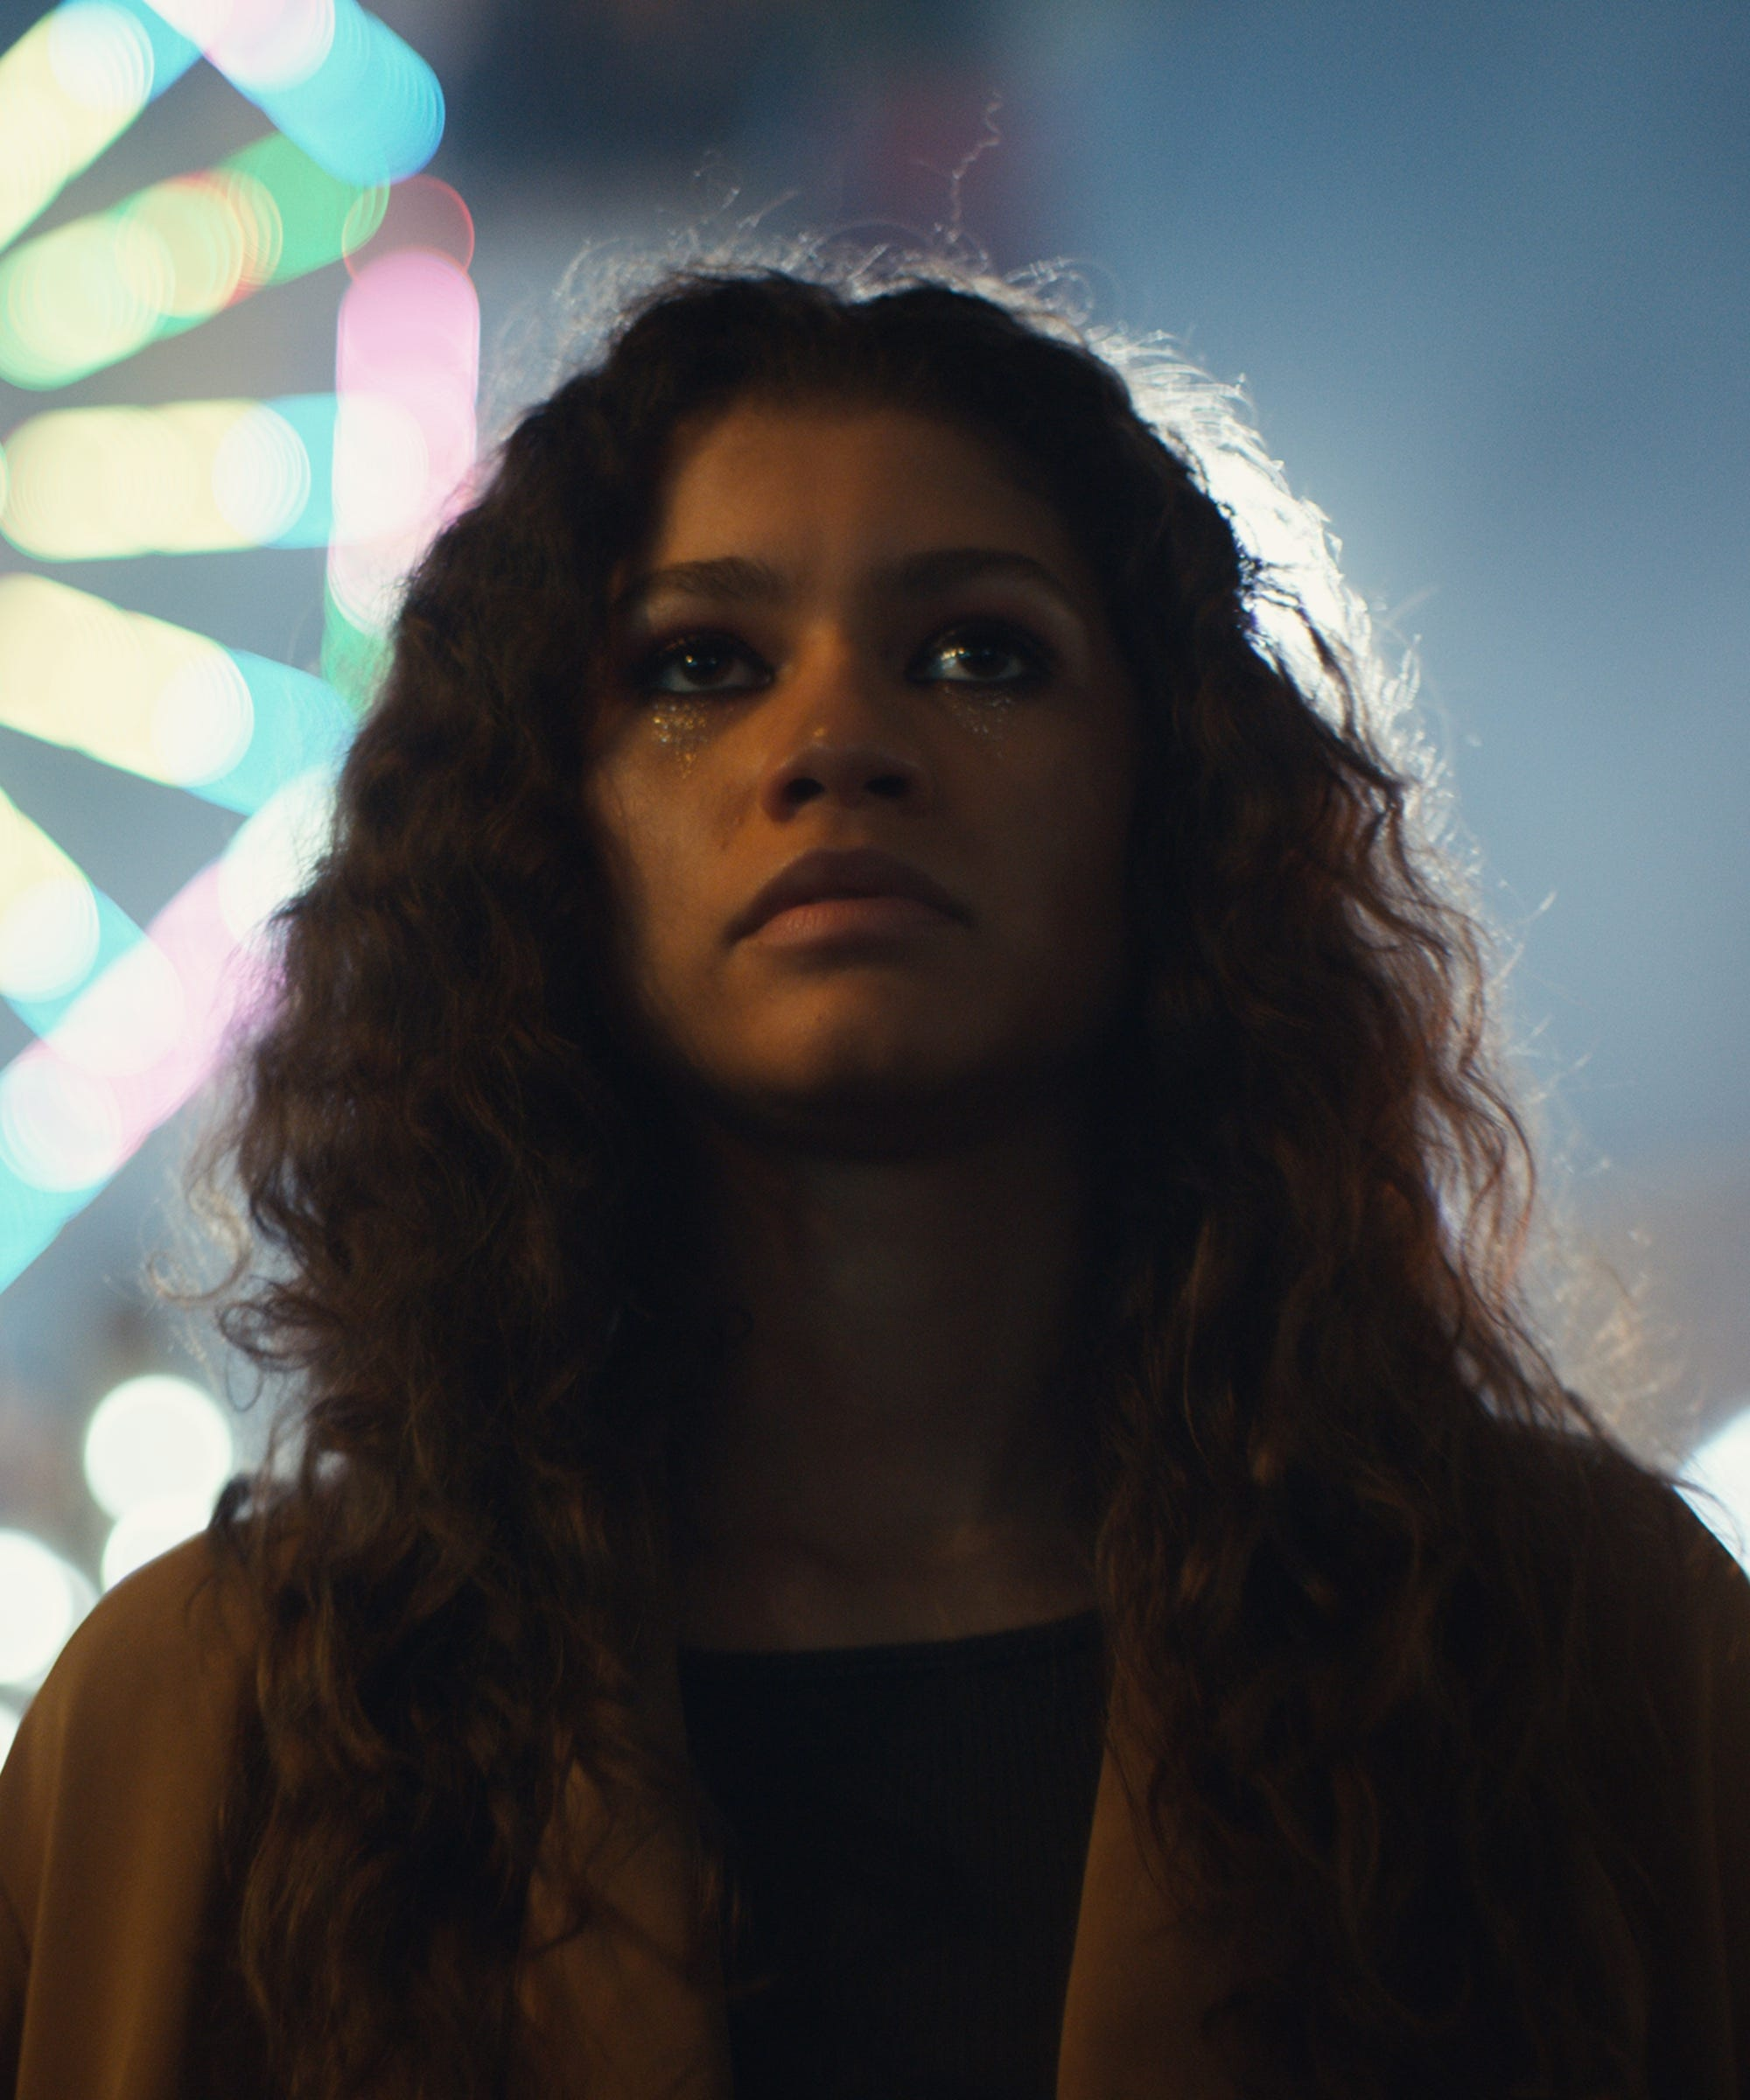 What's In The Name Of HBO's New Drama, Euphoria